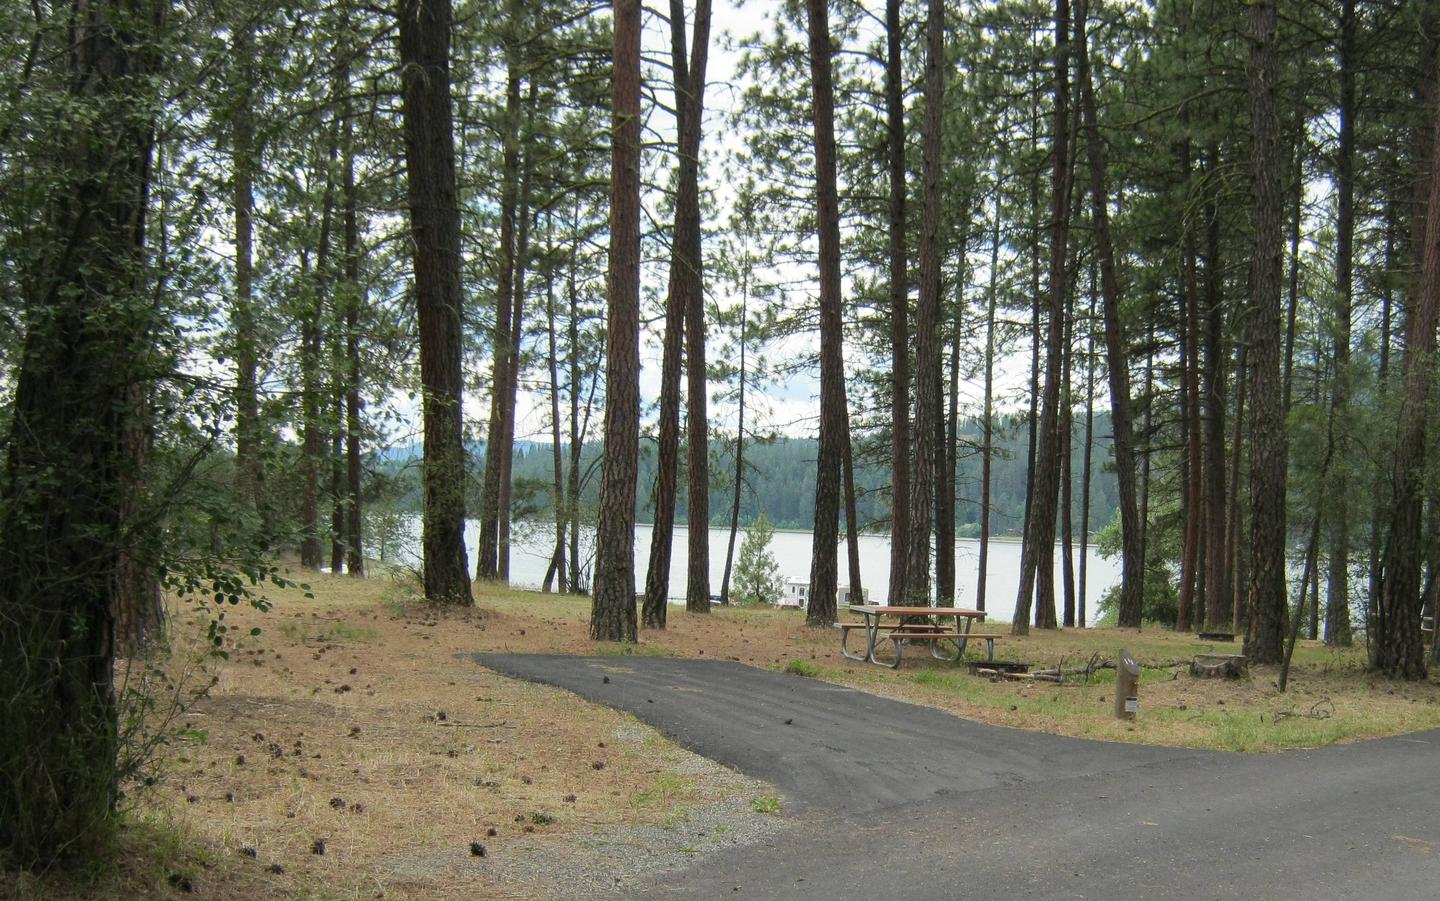 Site 19, Back inSite 19, Back in, Trees and lake in background